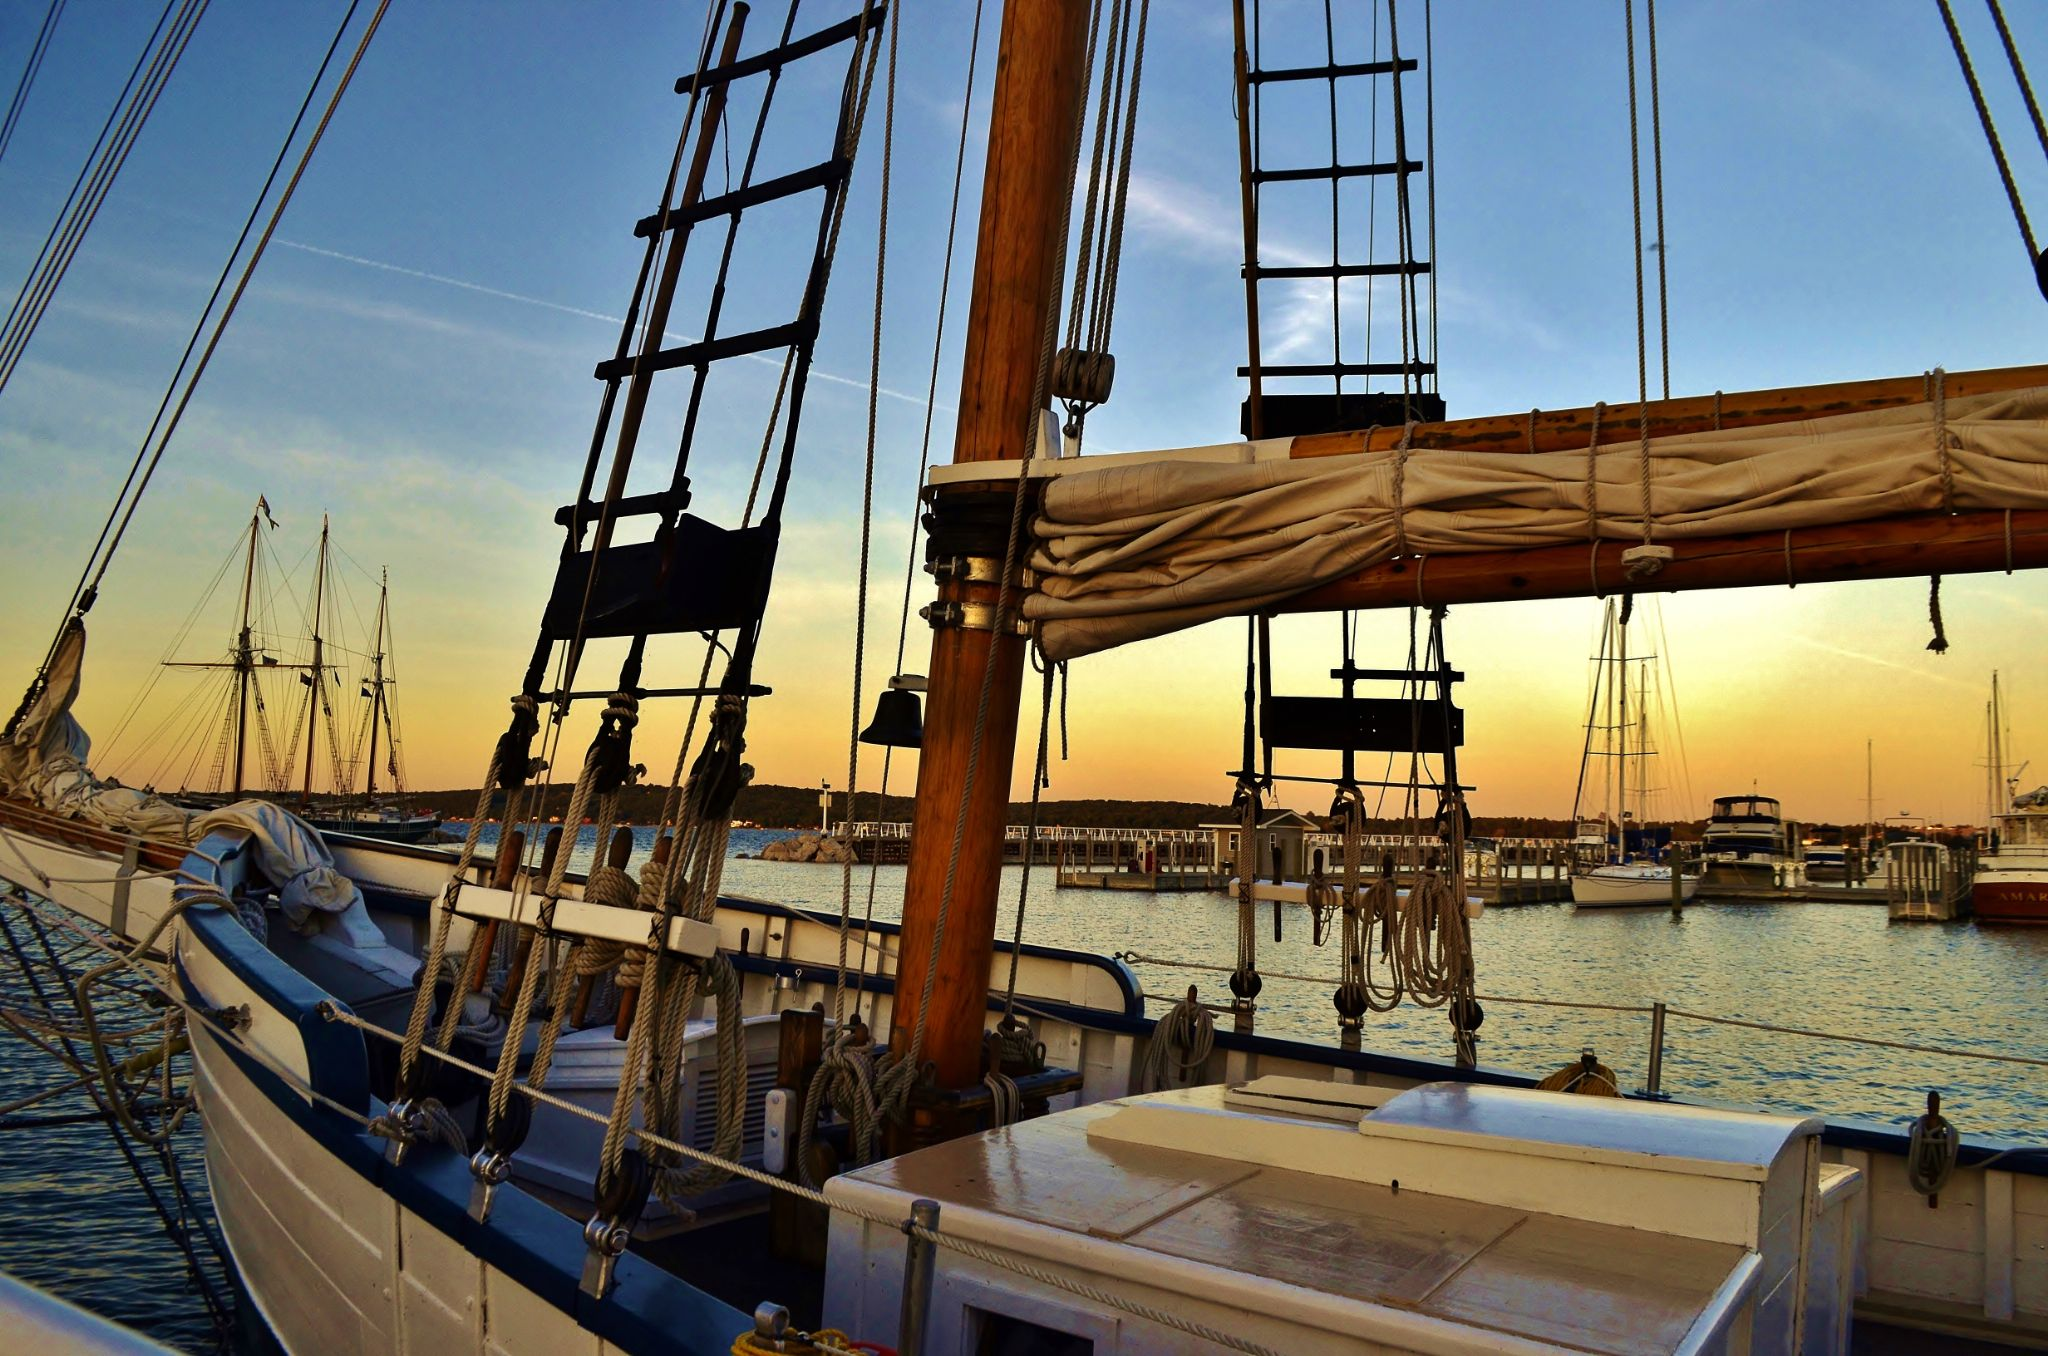 Schooners at Dusk by junkshopfiddler